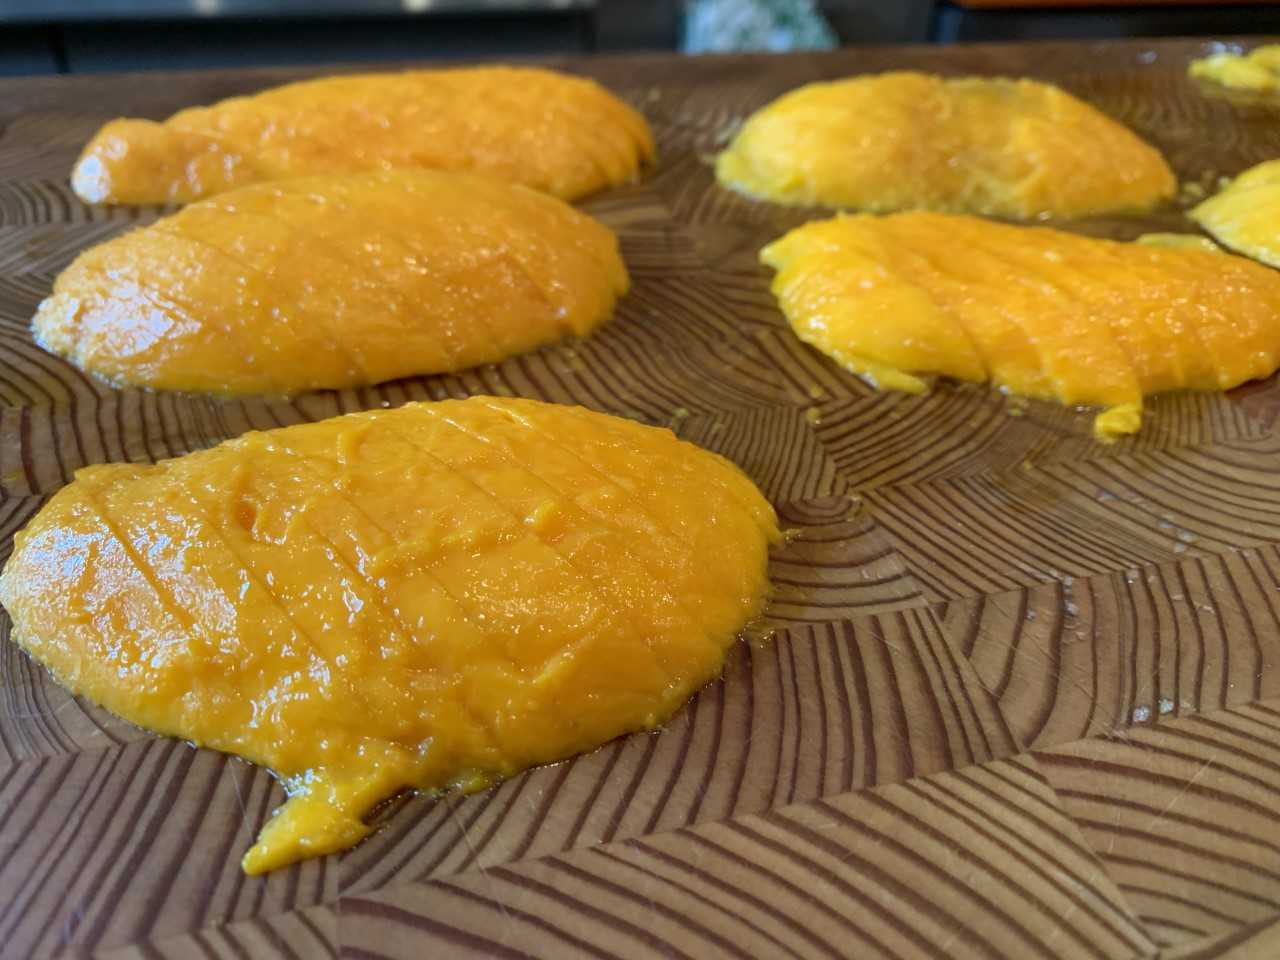 mango slippers sliced